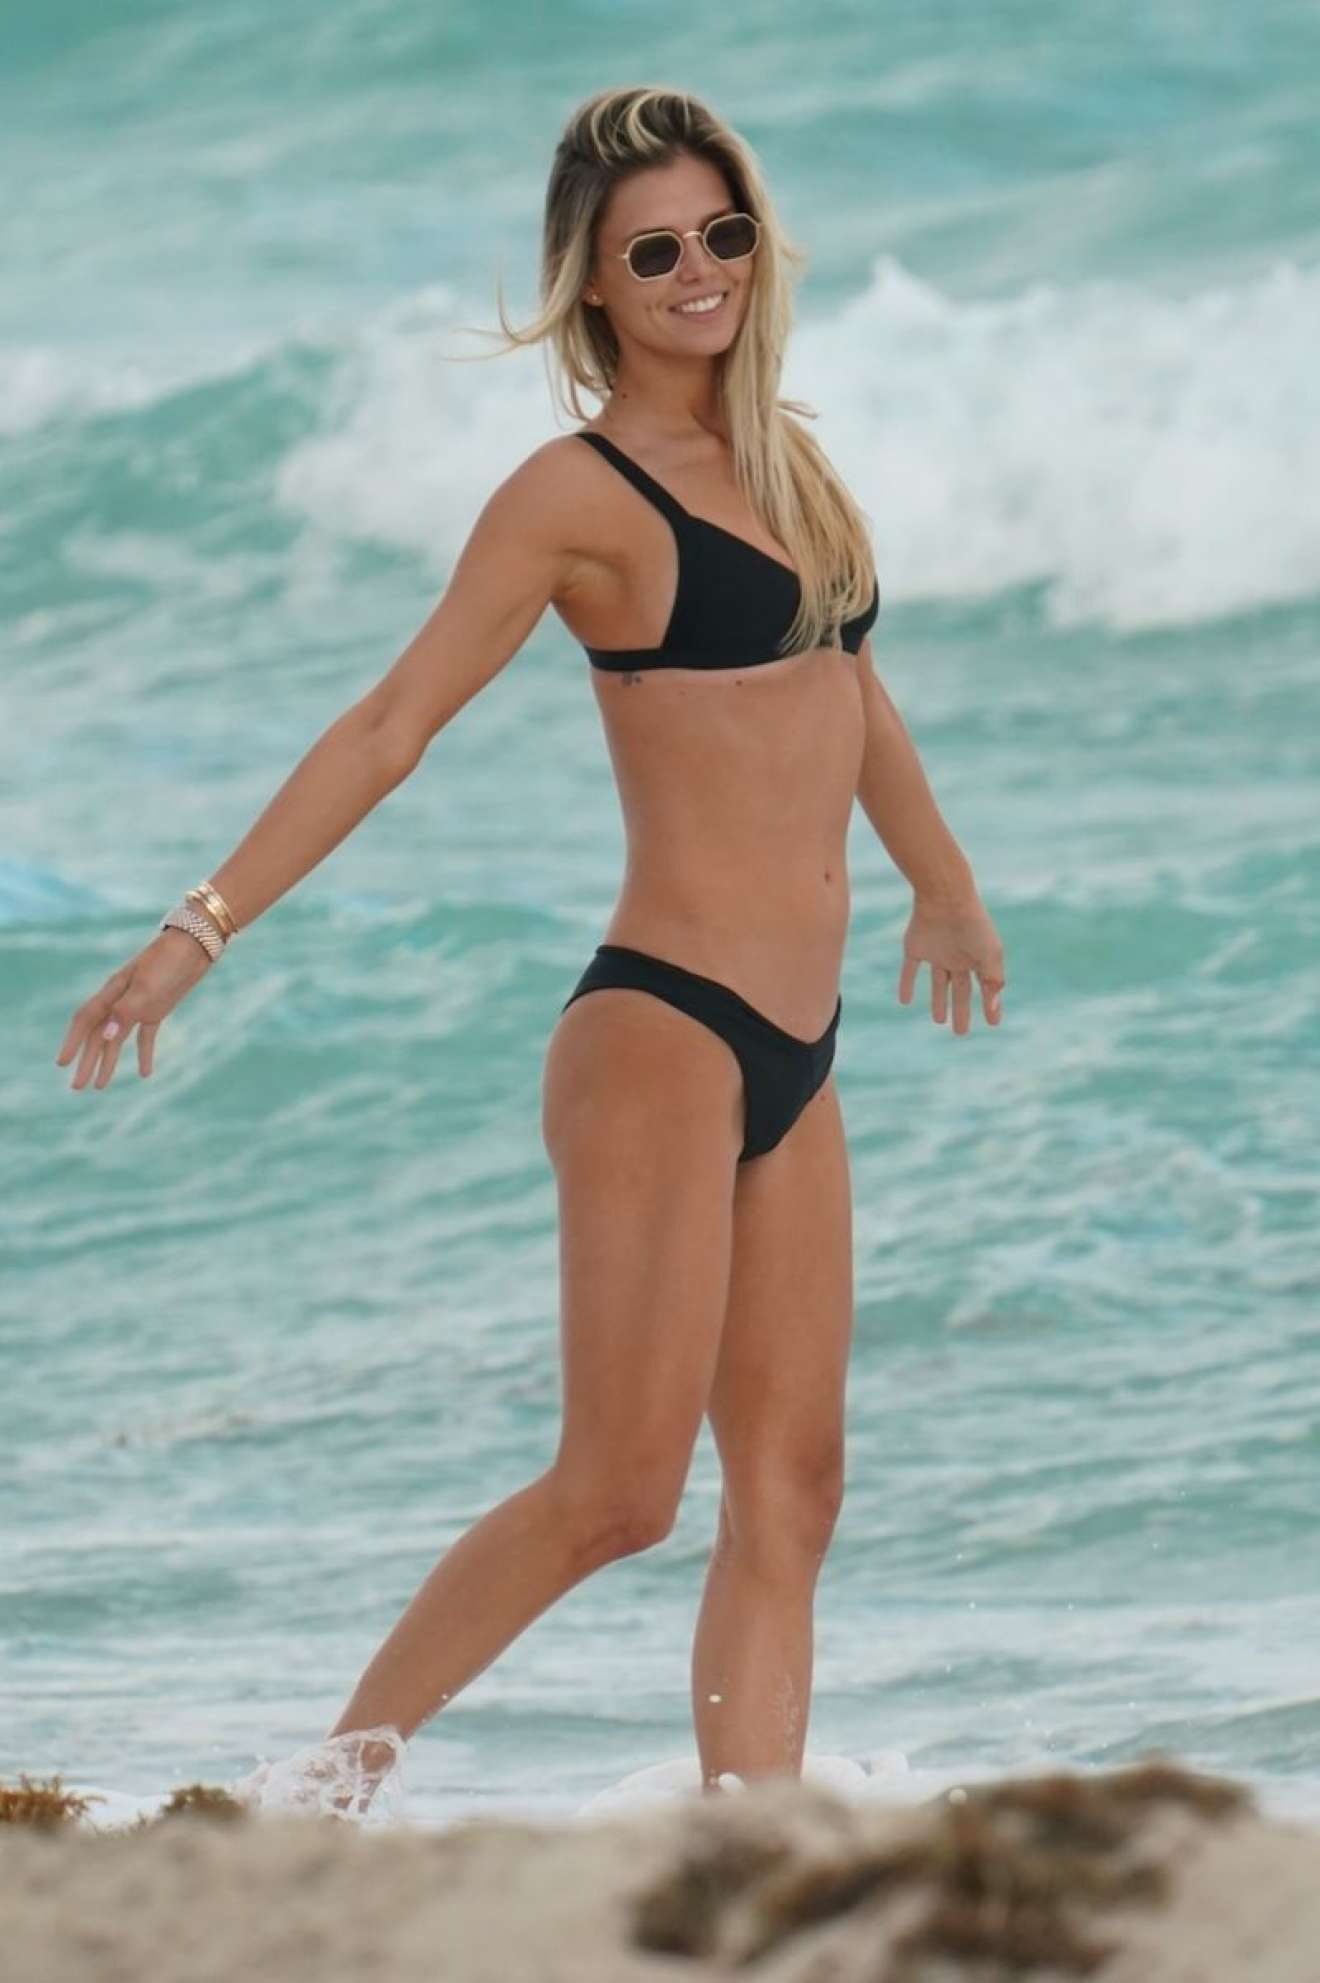 Danielle Knudson - Bikini Candids at A Beach In Miami